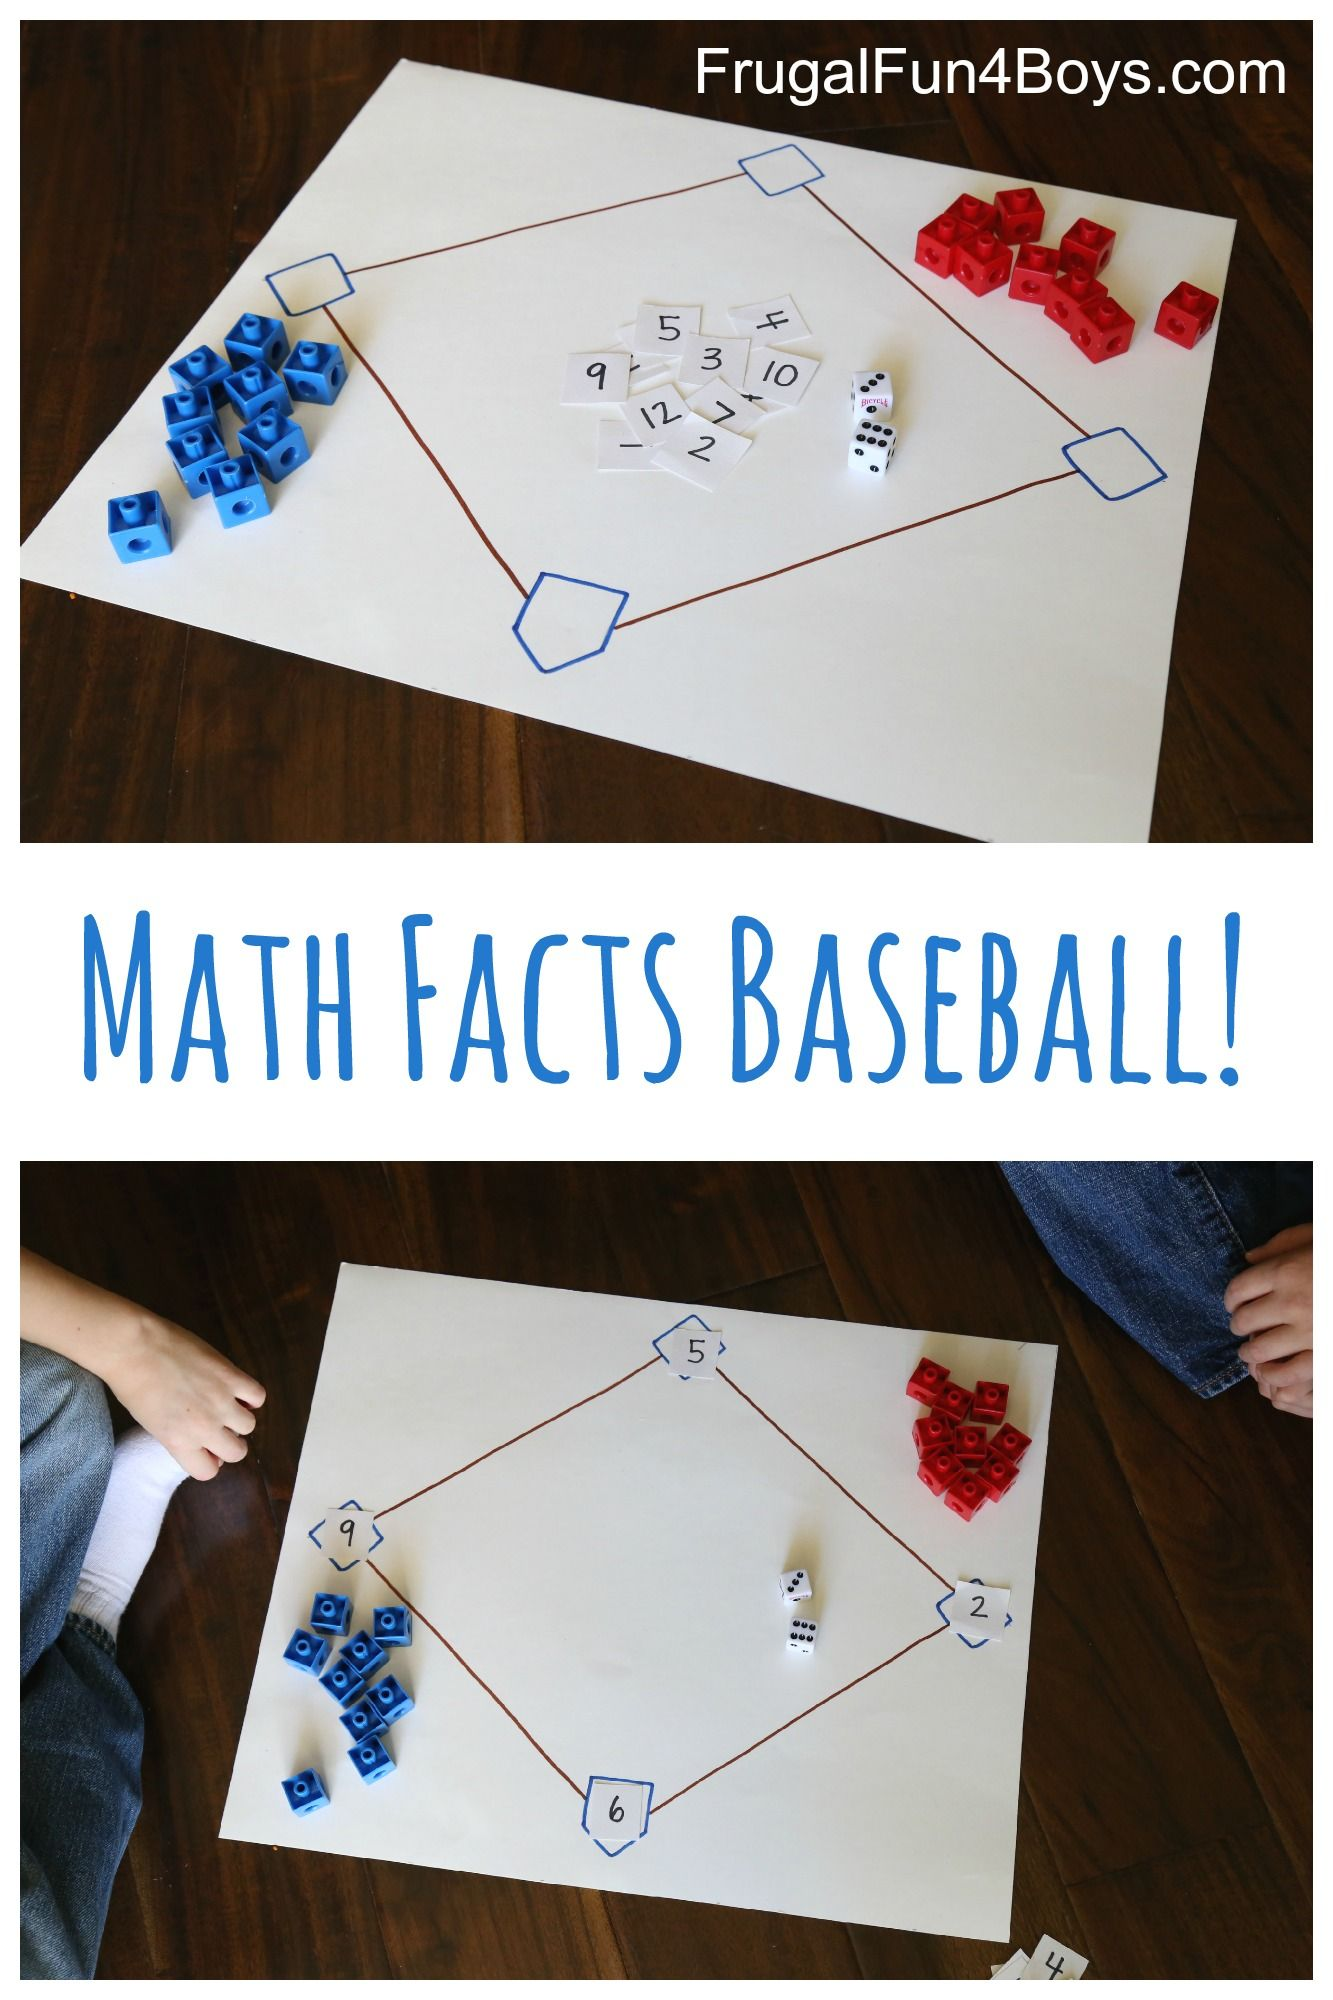 Worksheet Learning Math Facts math facts baseball an awesome way to practice and season